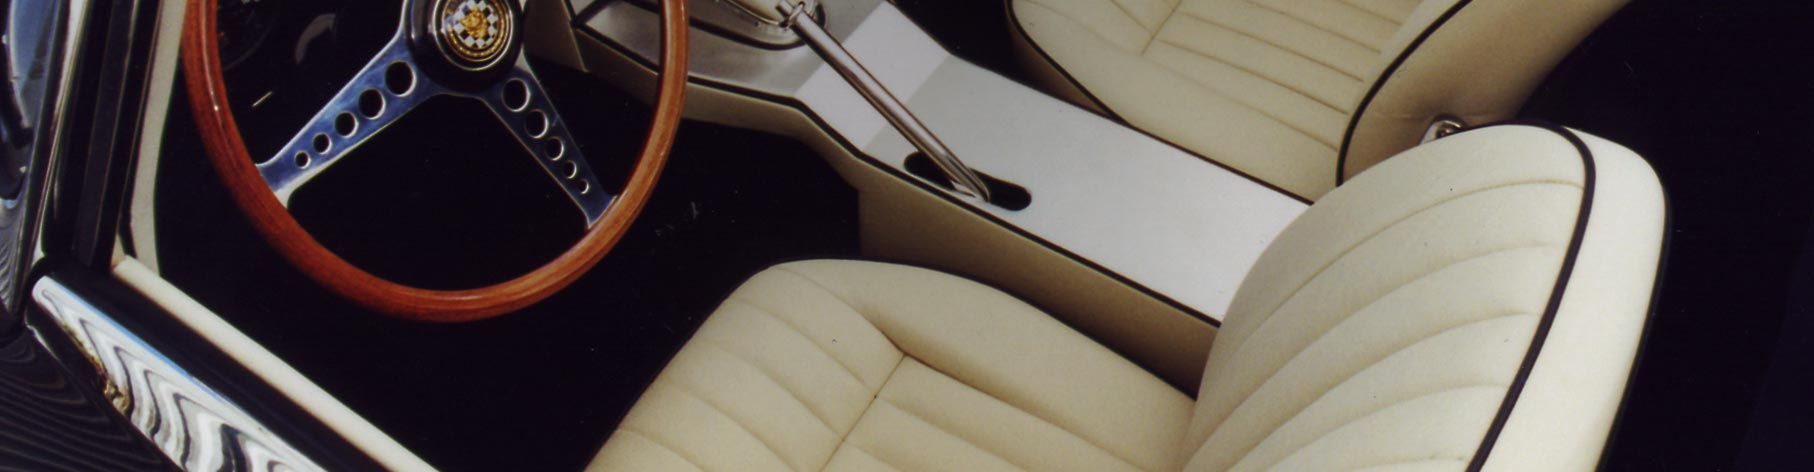 Bas jaguar trim quality upholstery products for classic for Interior trim materials